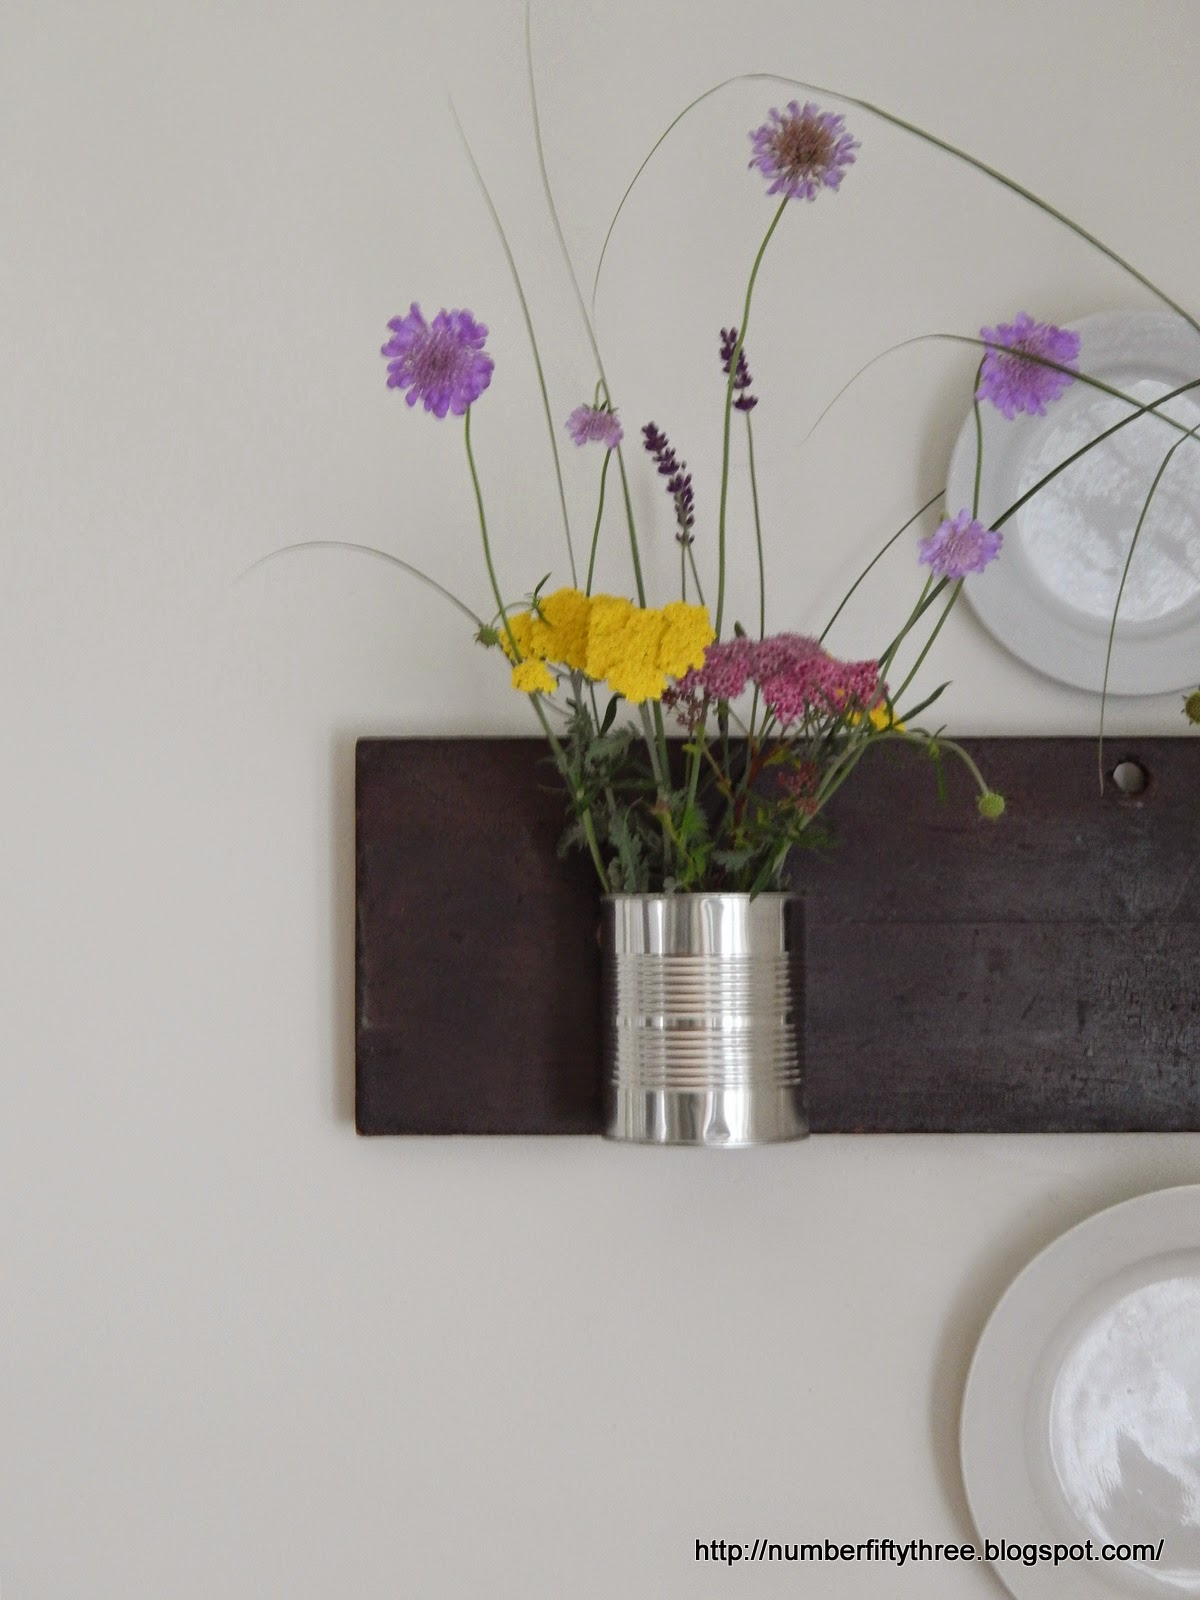 make a reclaimed vase wall haning with recycled cans and an old drawer front.